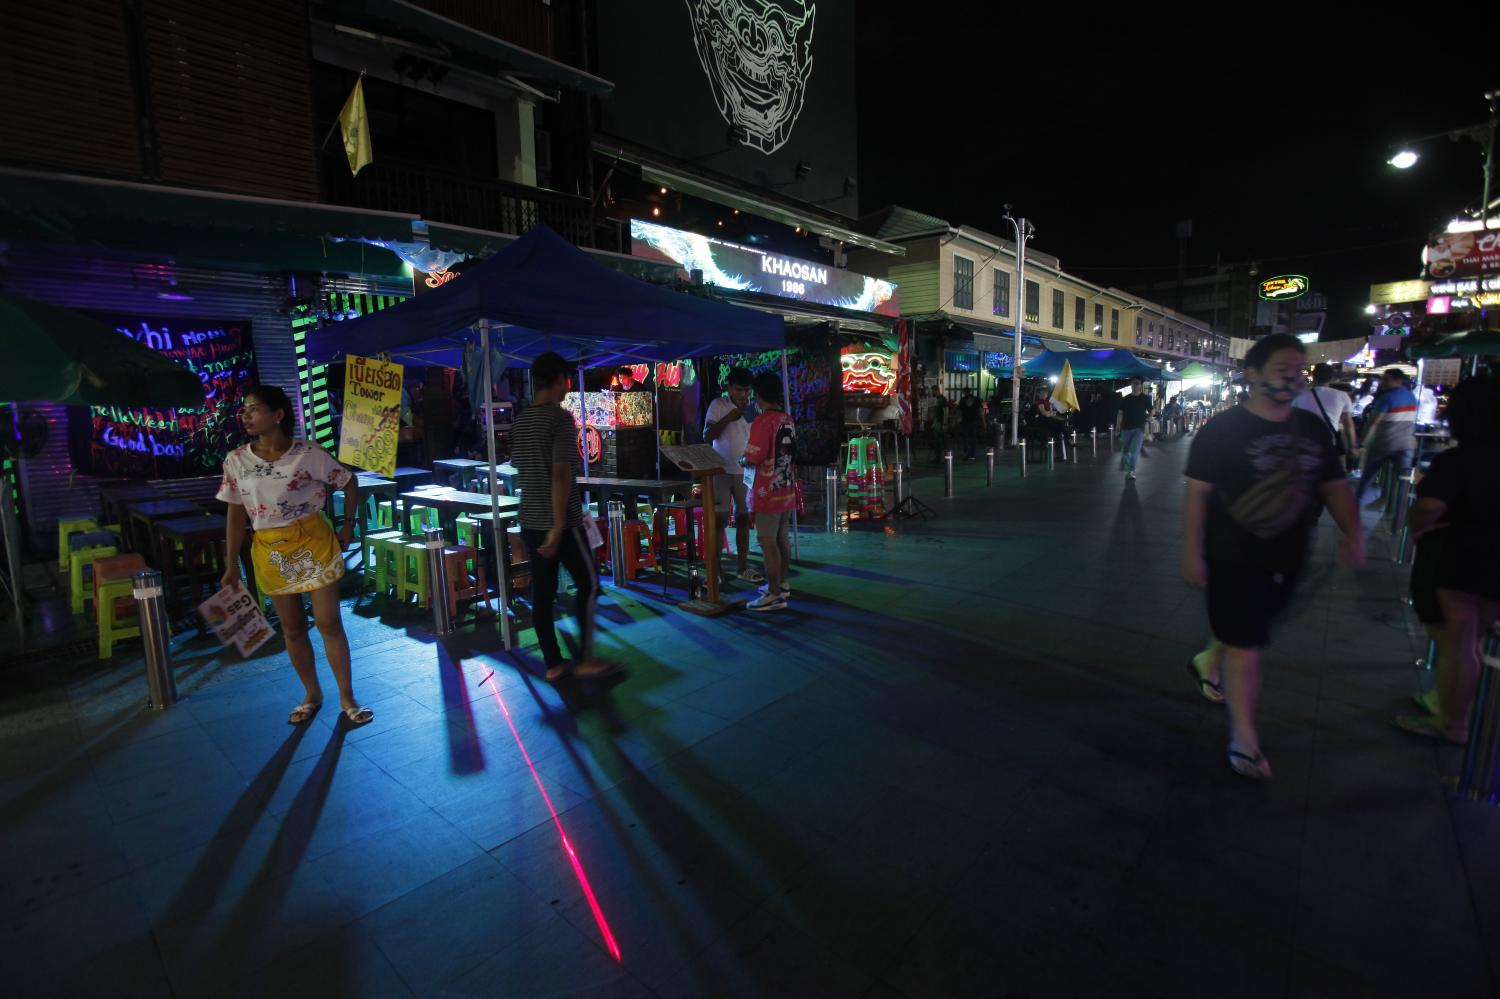 Nightlife is trickling back to Khao San Road after a long shutdown during the coronavirus outbreak.(Photo by Nutthawat Wicheanbut)